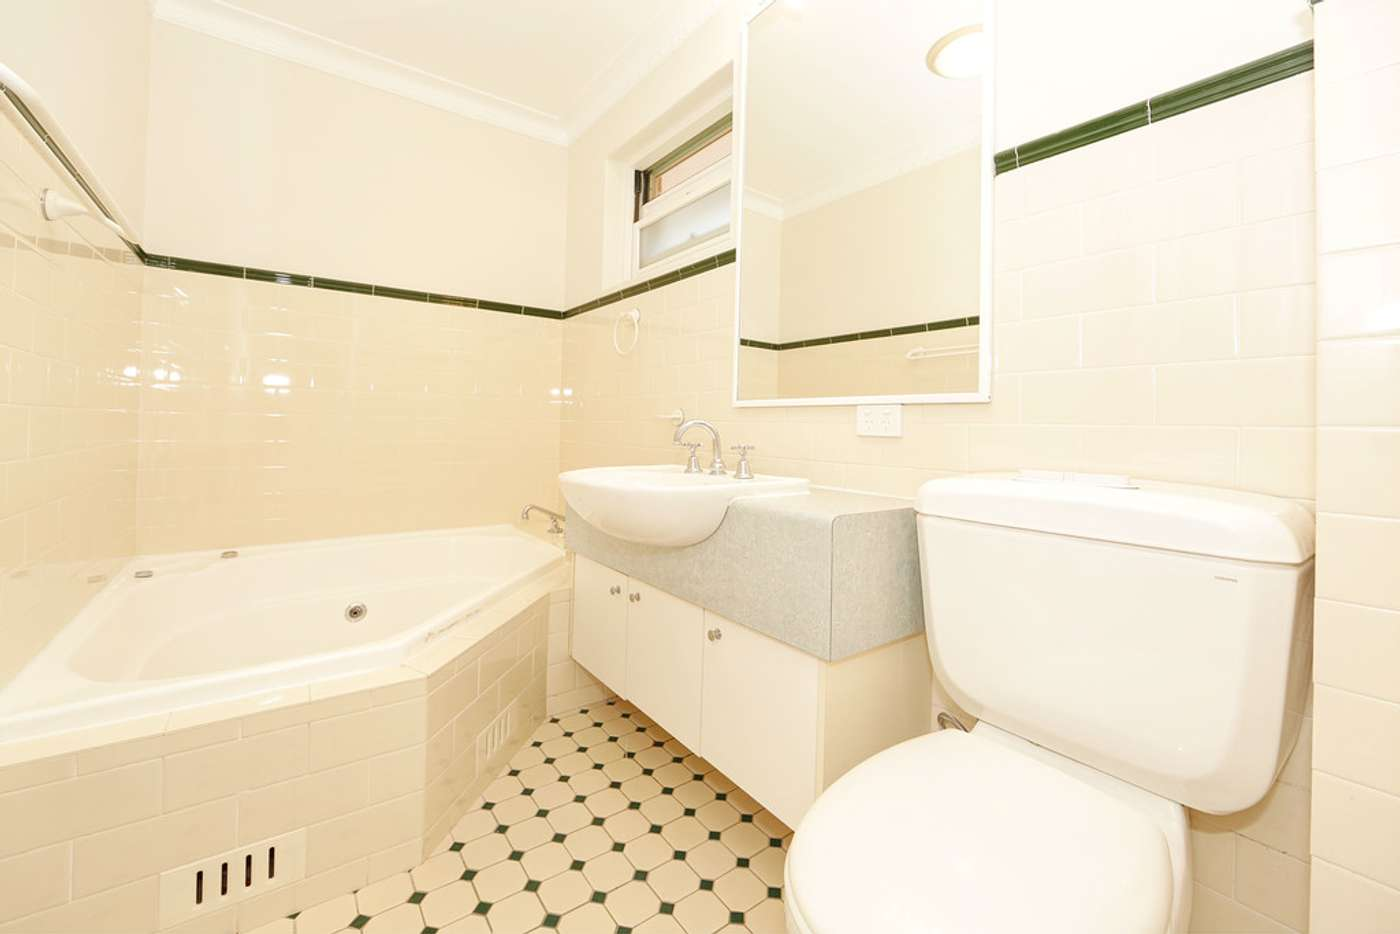 Seventh view of Homely apartment listing, 9/2-4 Hampden Avenue, Cremorne NSW 2090